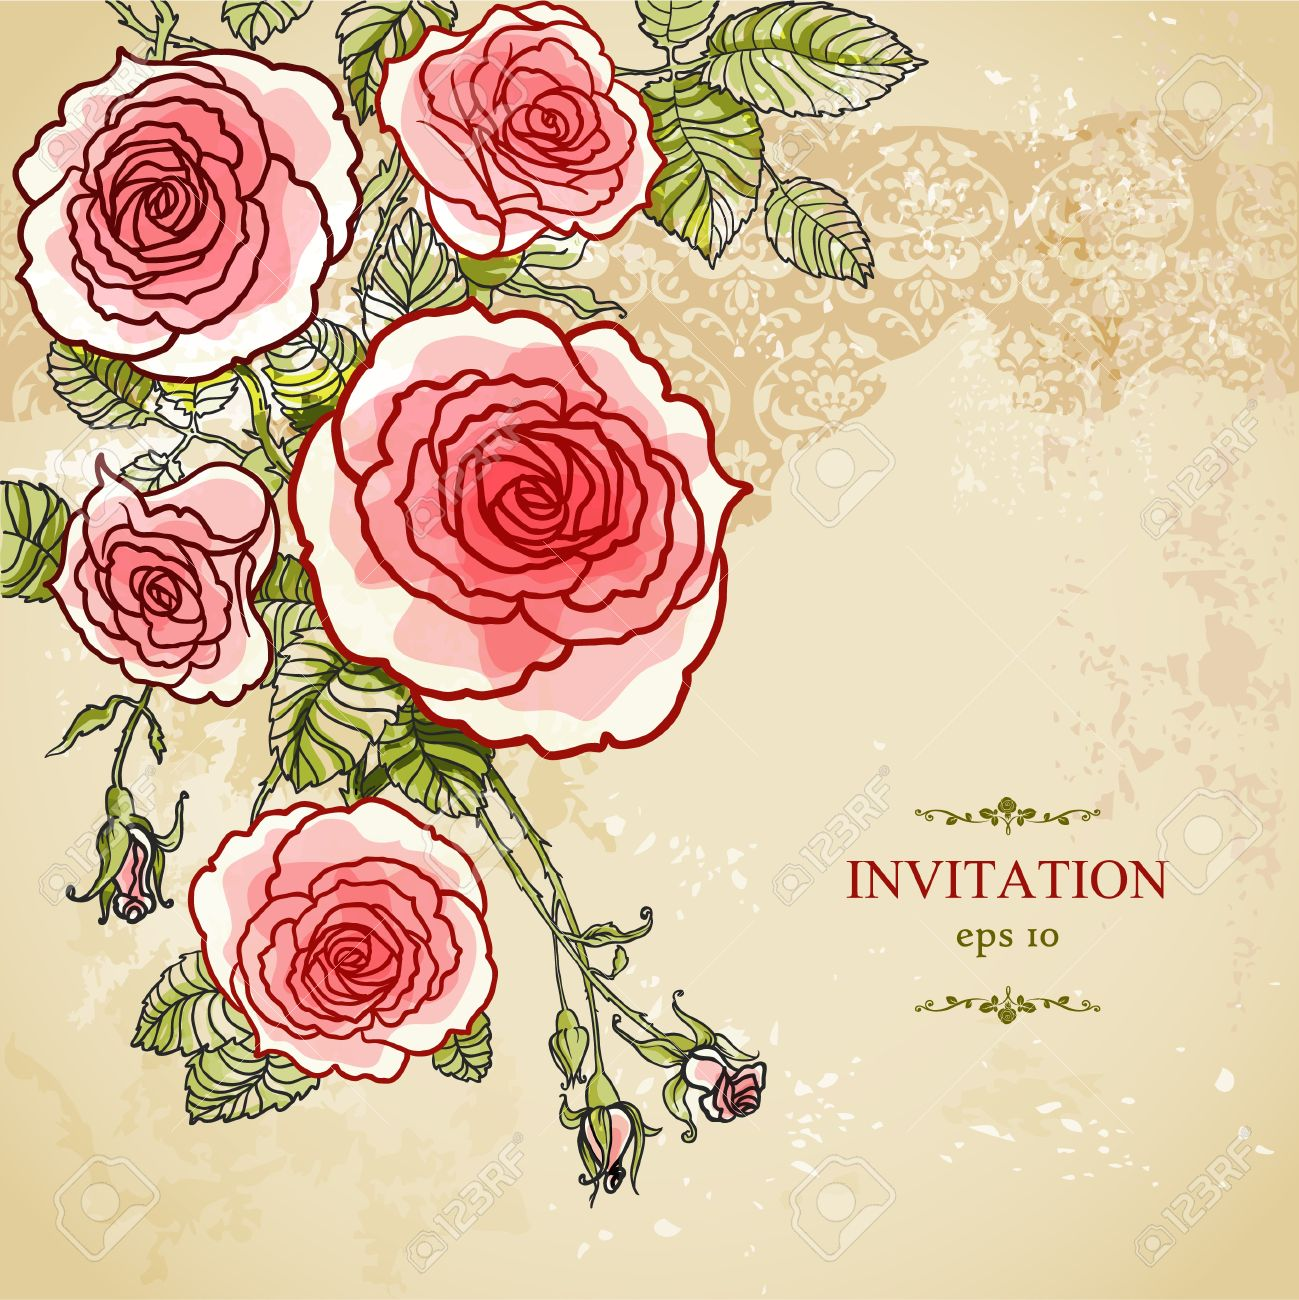 Floral invitation background with copy space Stock Vector - 20544668